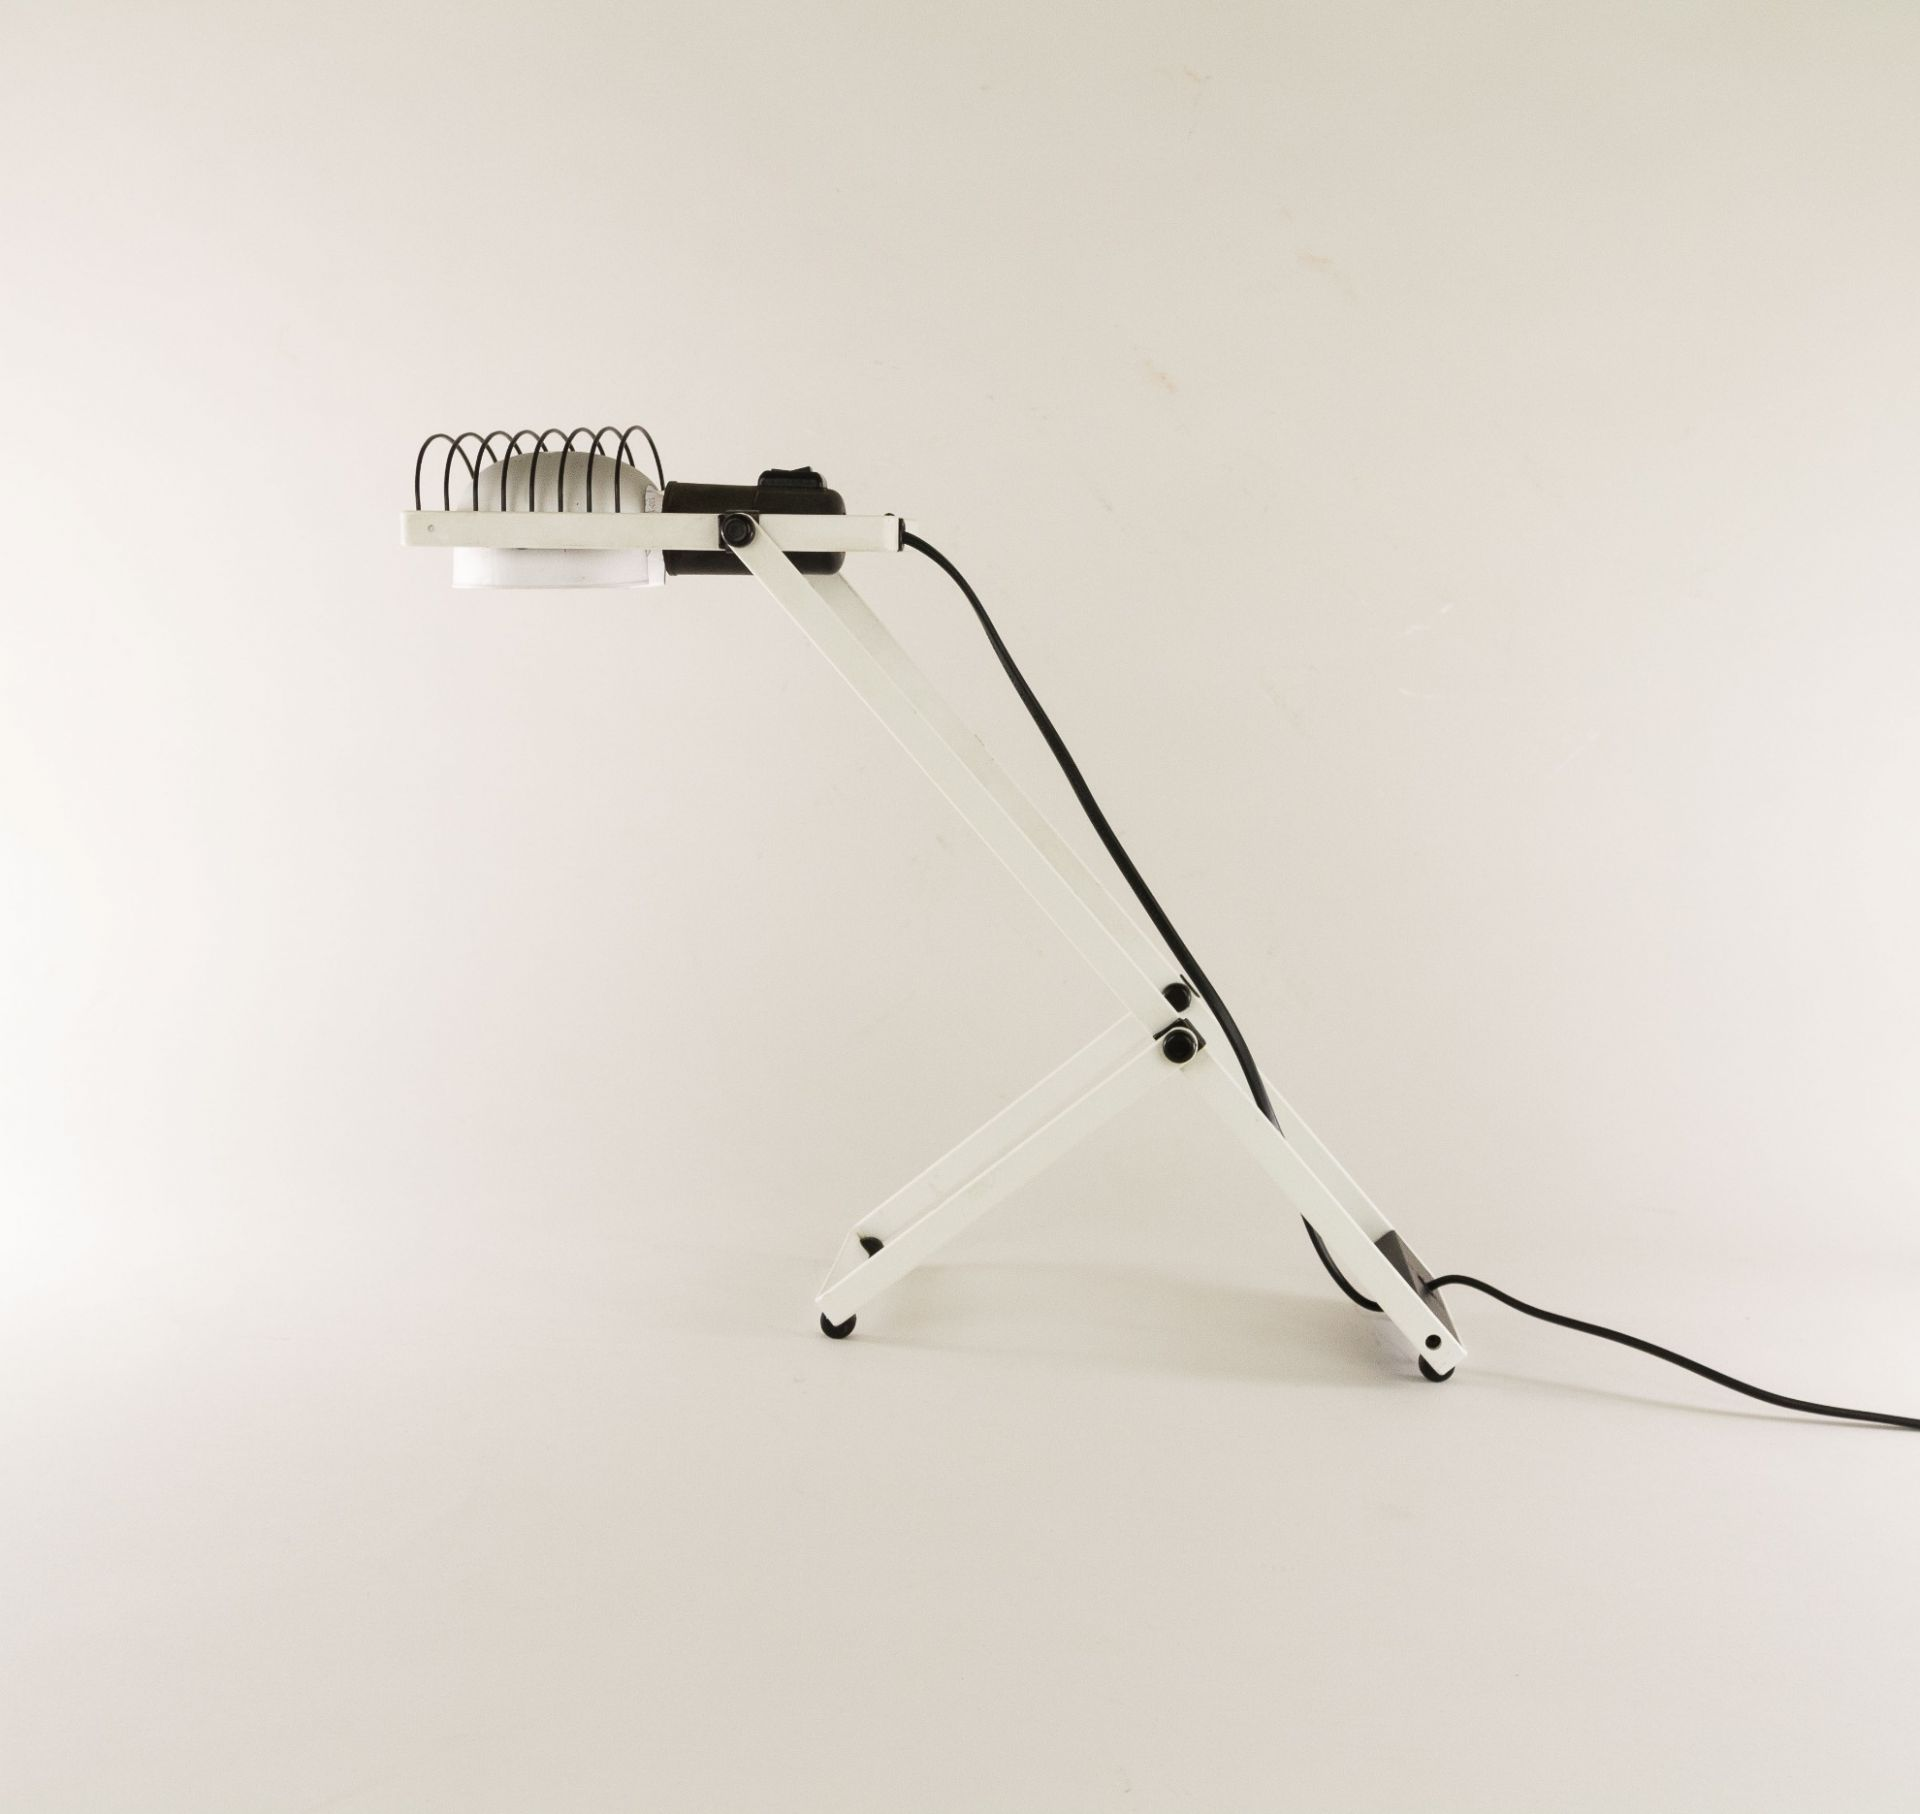 White and Black Sintesi table lamp by Ernesto Gismondi for Artemide, 1970s